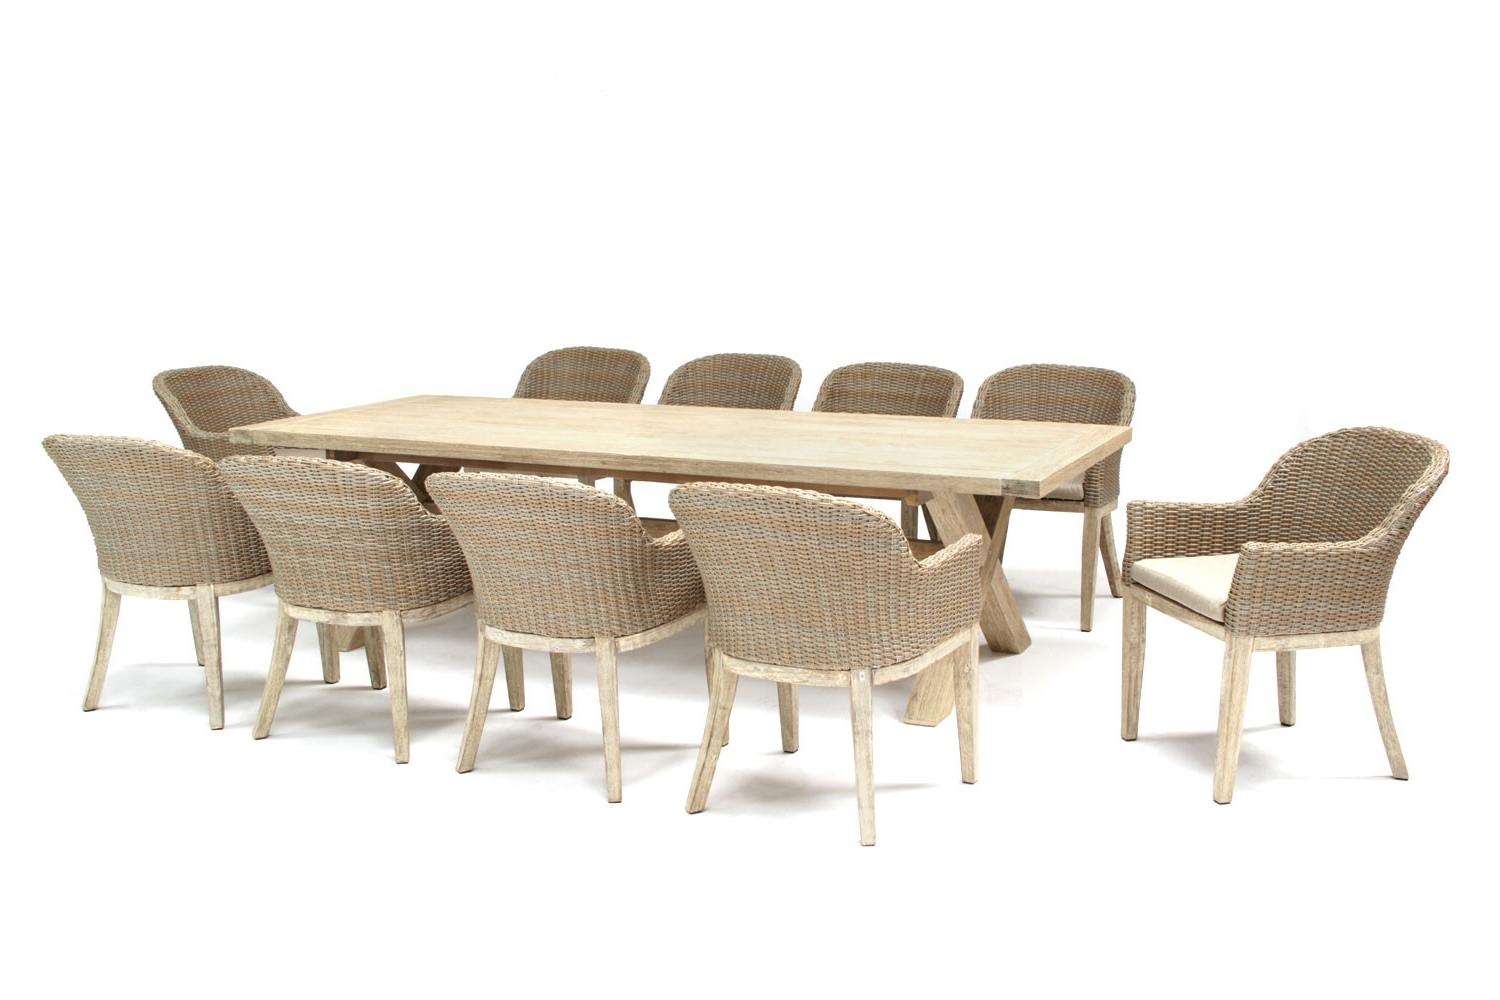 Cora Dining Tables Inside Most Recently Released Kettler Cora 280X100Cm 10 Seat Dining Set (View 7 of 25)